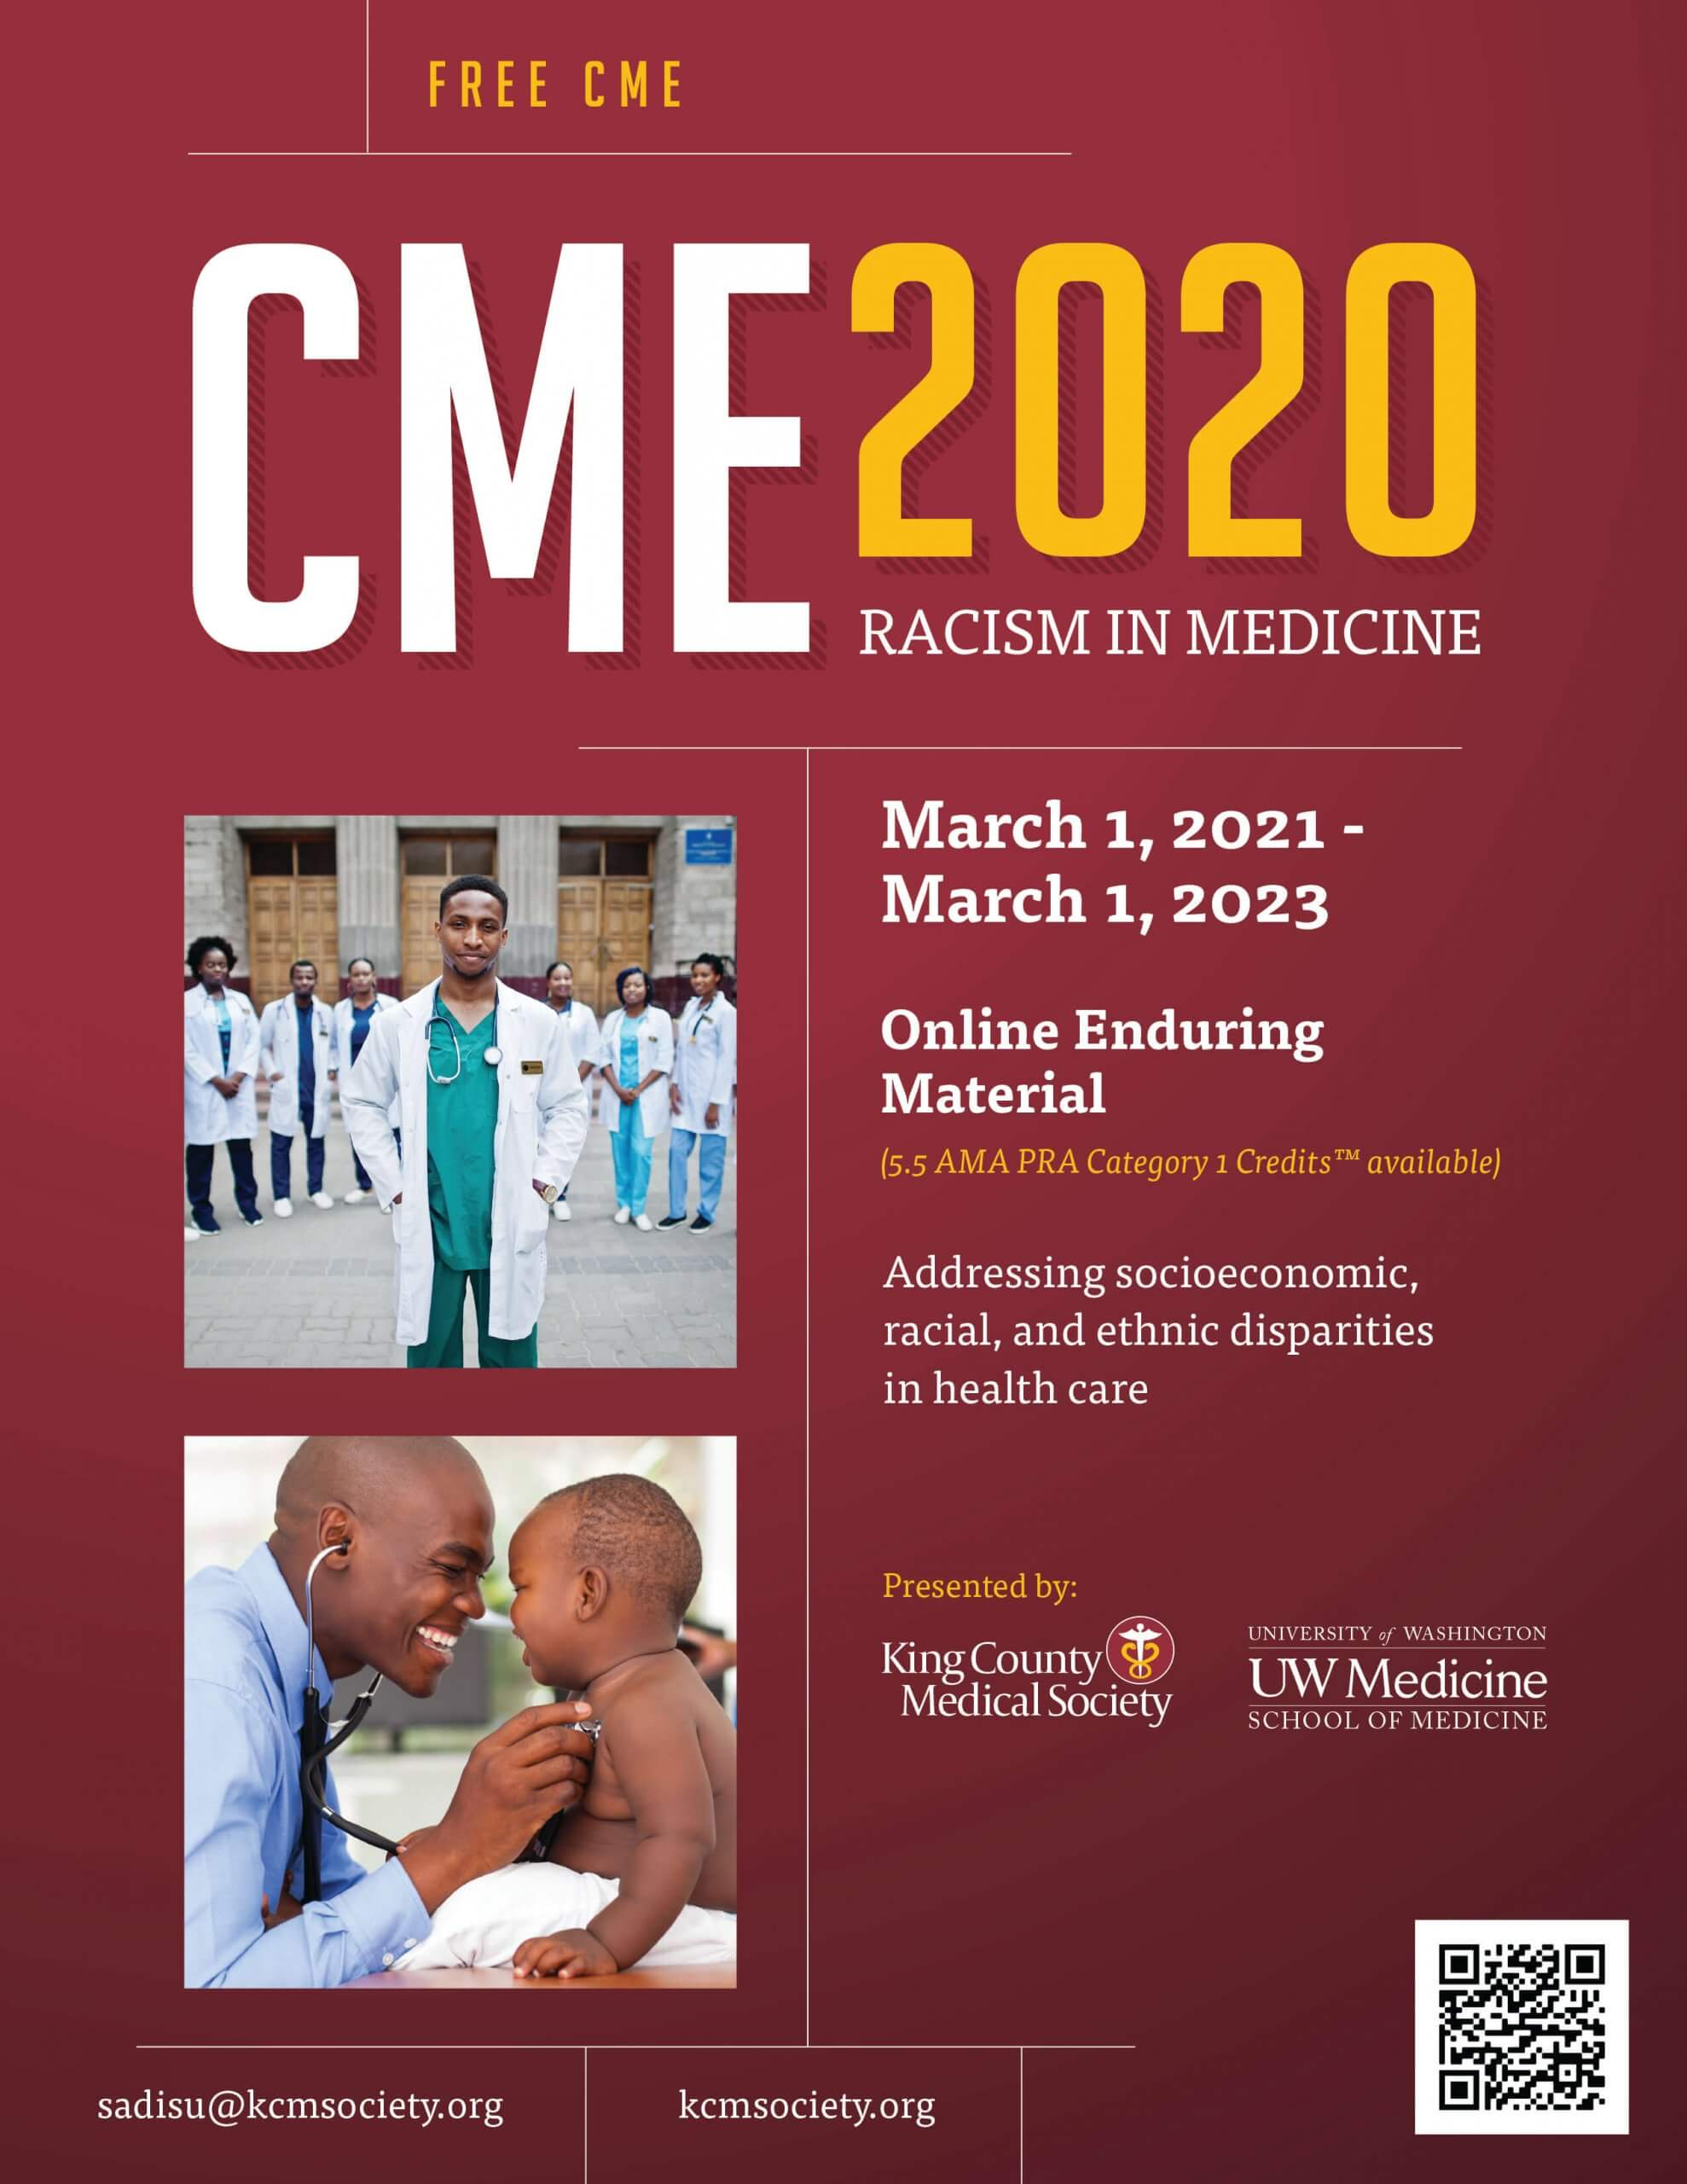 CME 2020